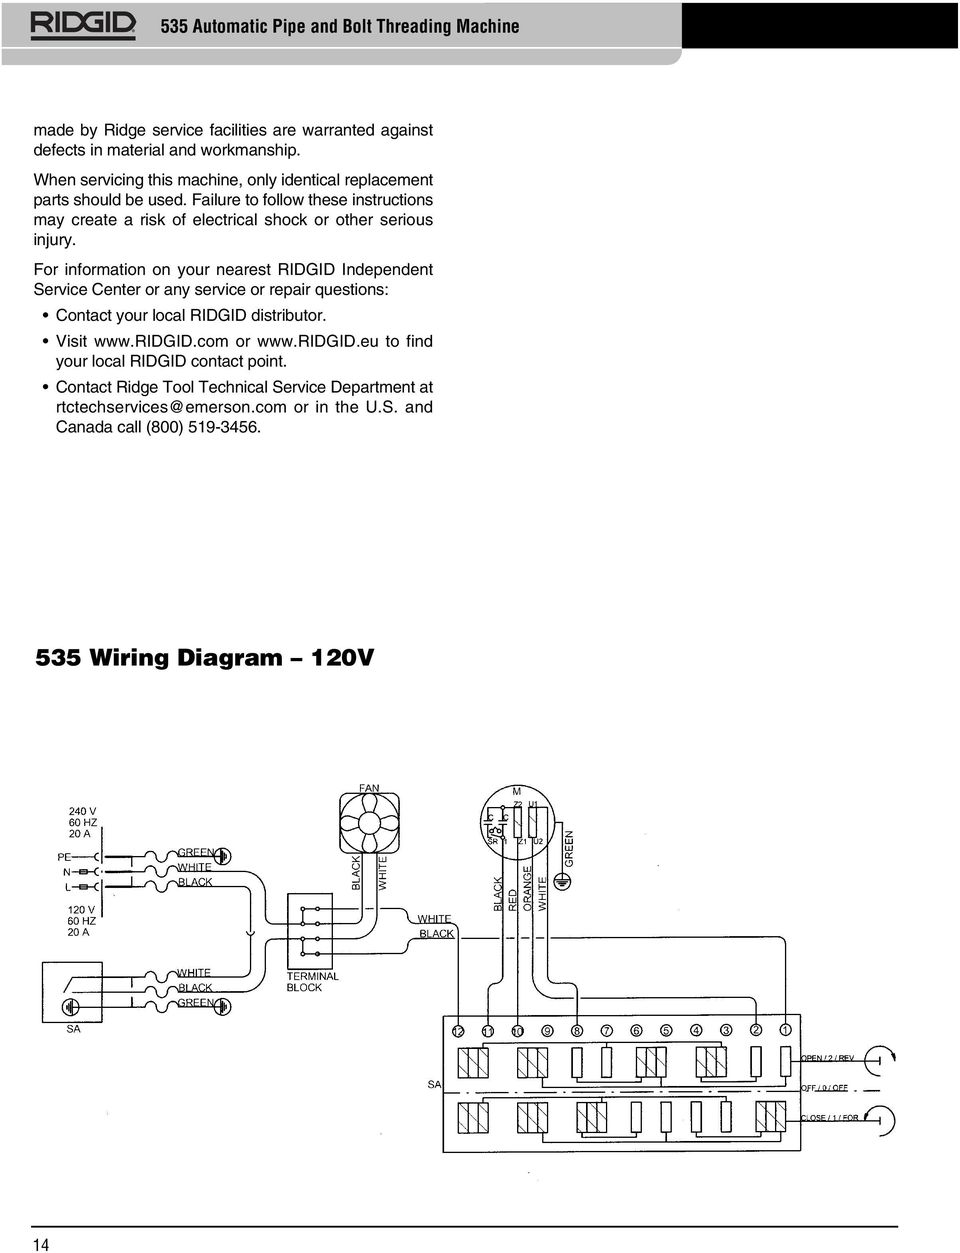 wiring diagram for ridgid threader 535 a automatic pipe and bolt threading machine pdf free download  pipe and bolt threading machine